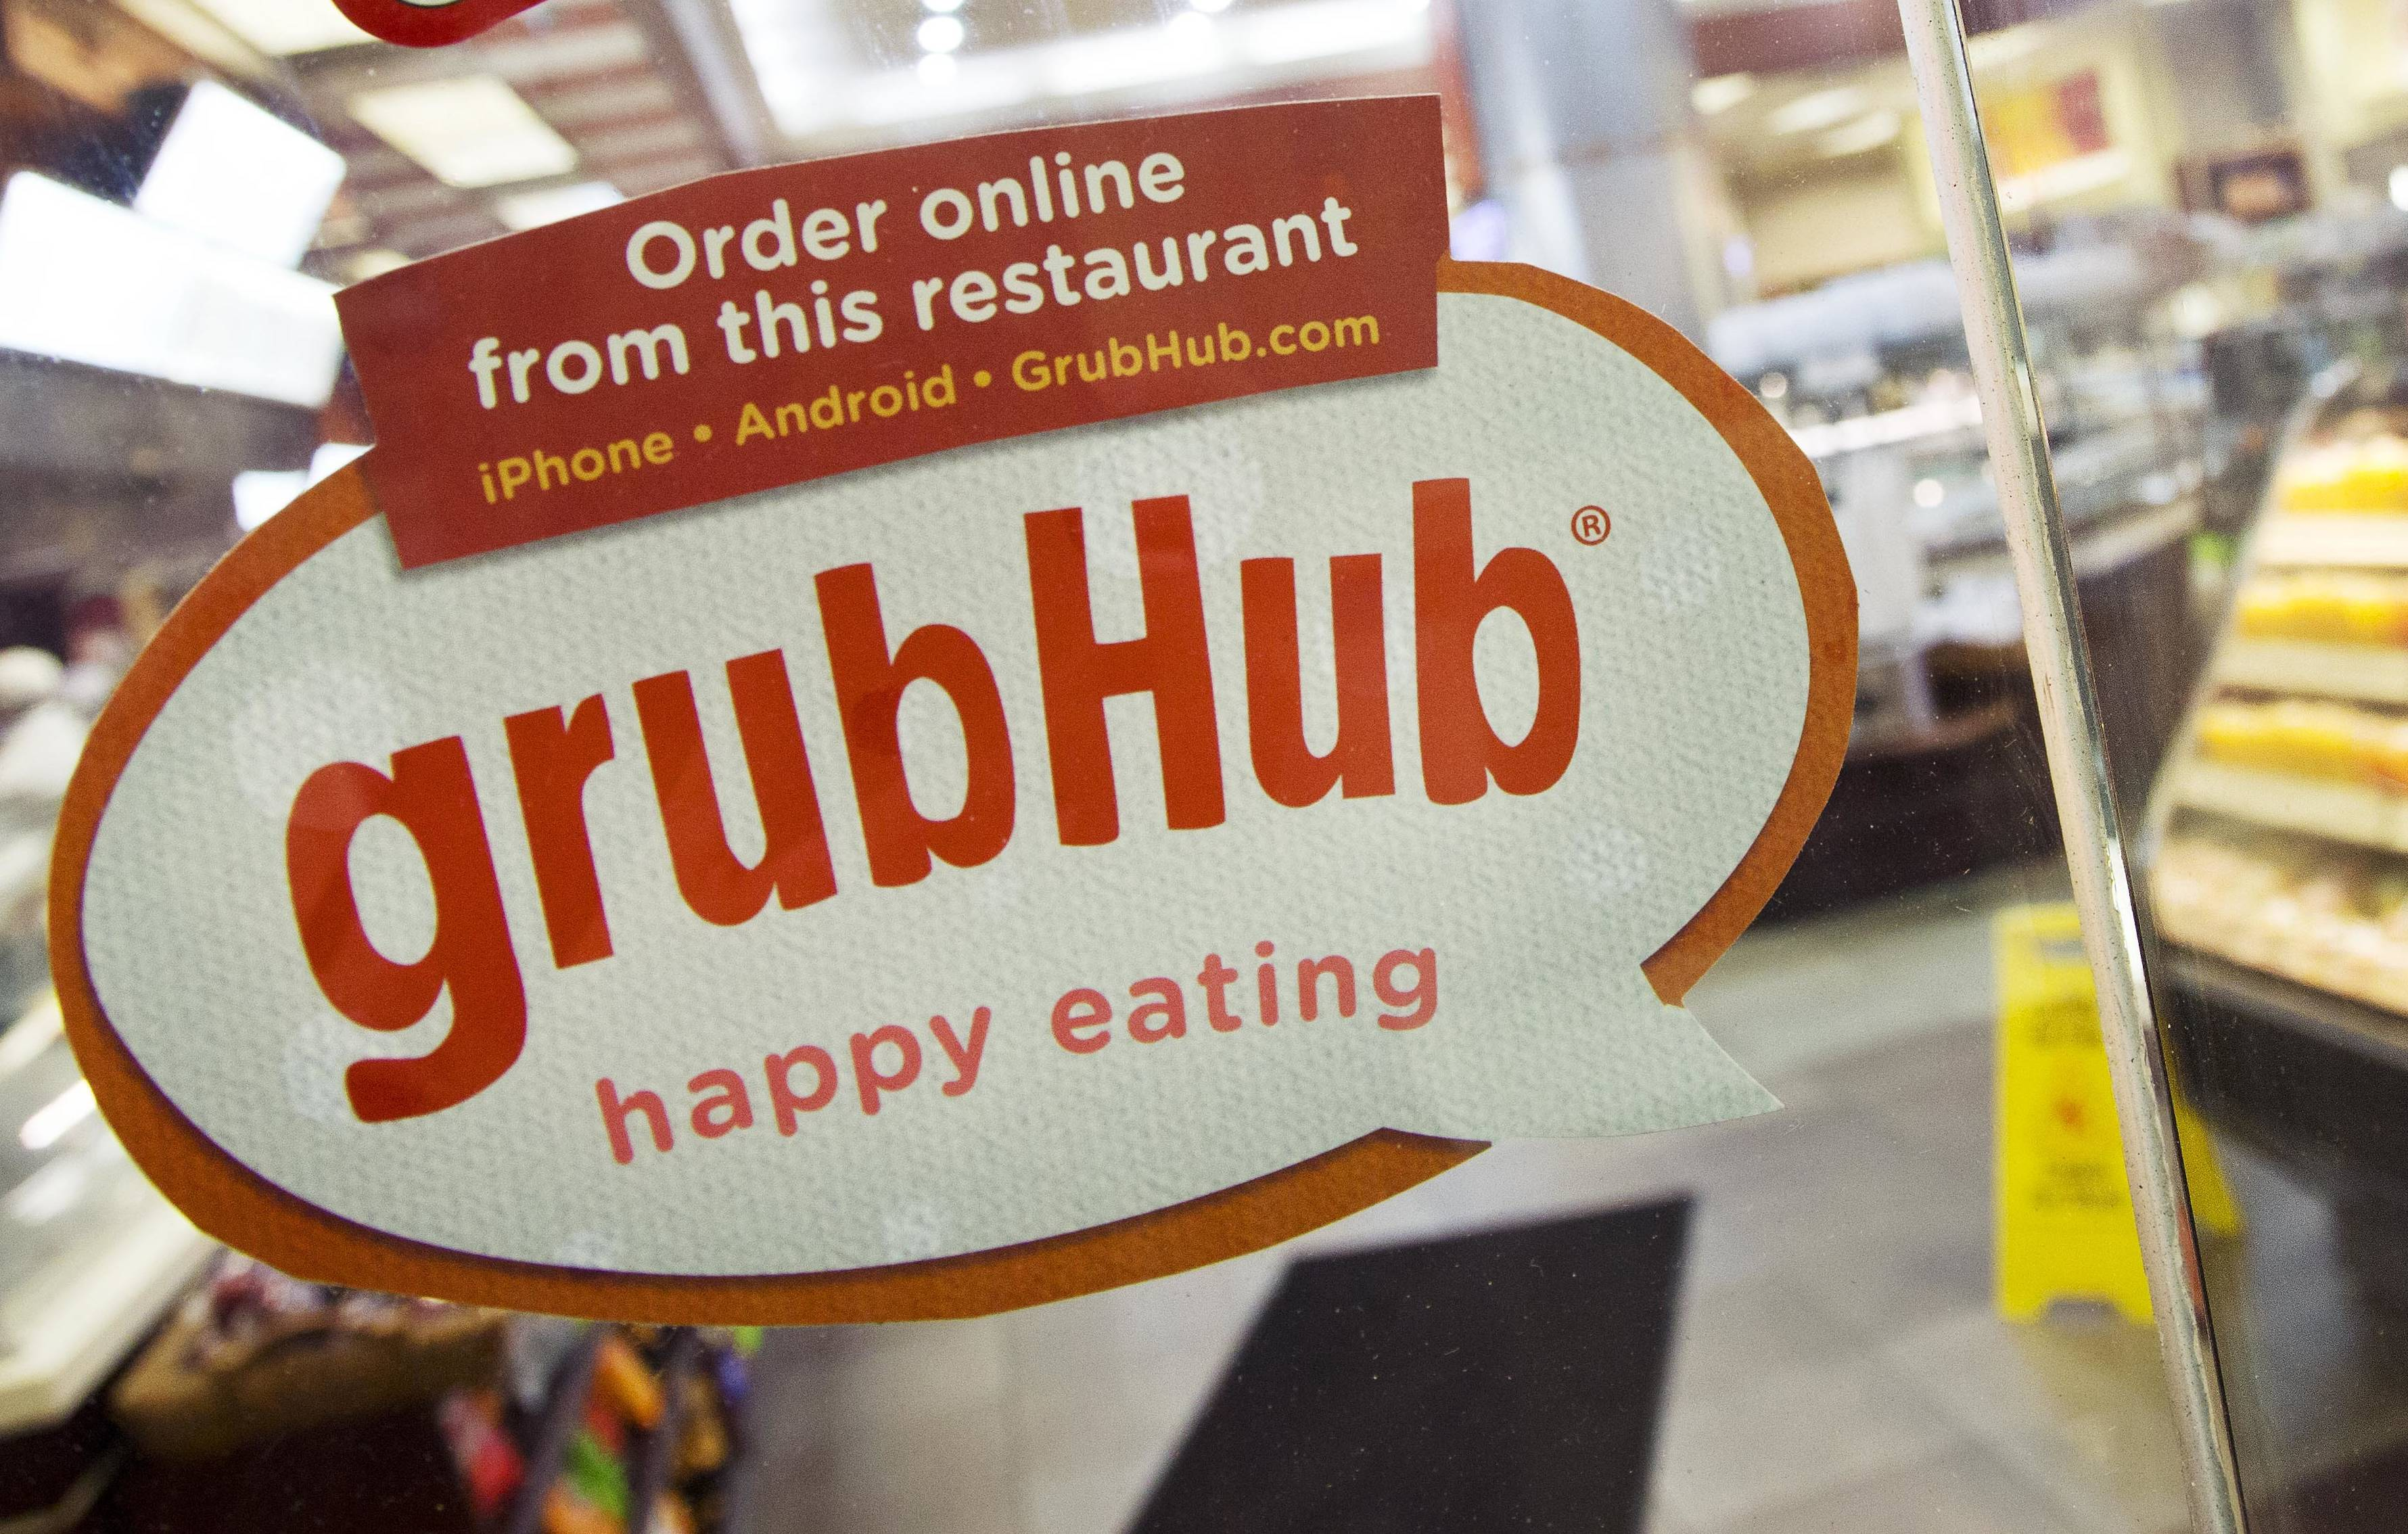 Yum Brands said that Grubhub will run KFC and Taco Bell delivery and online ordering in the United States. GrubHub will provide delivery people and its technology.